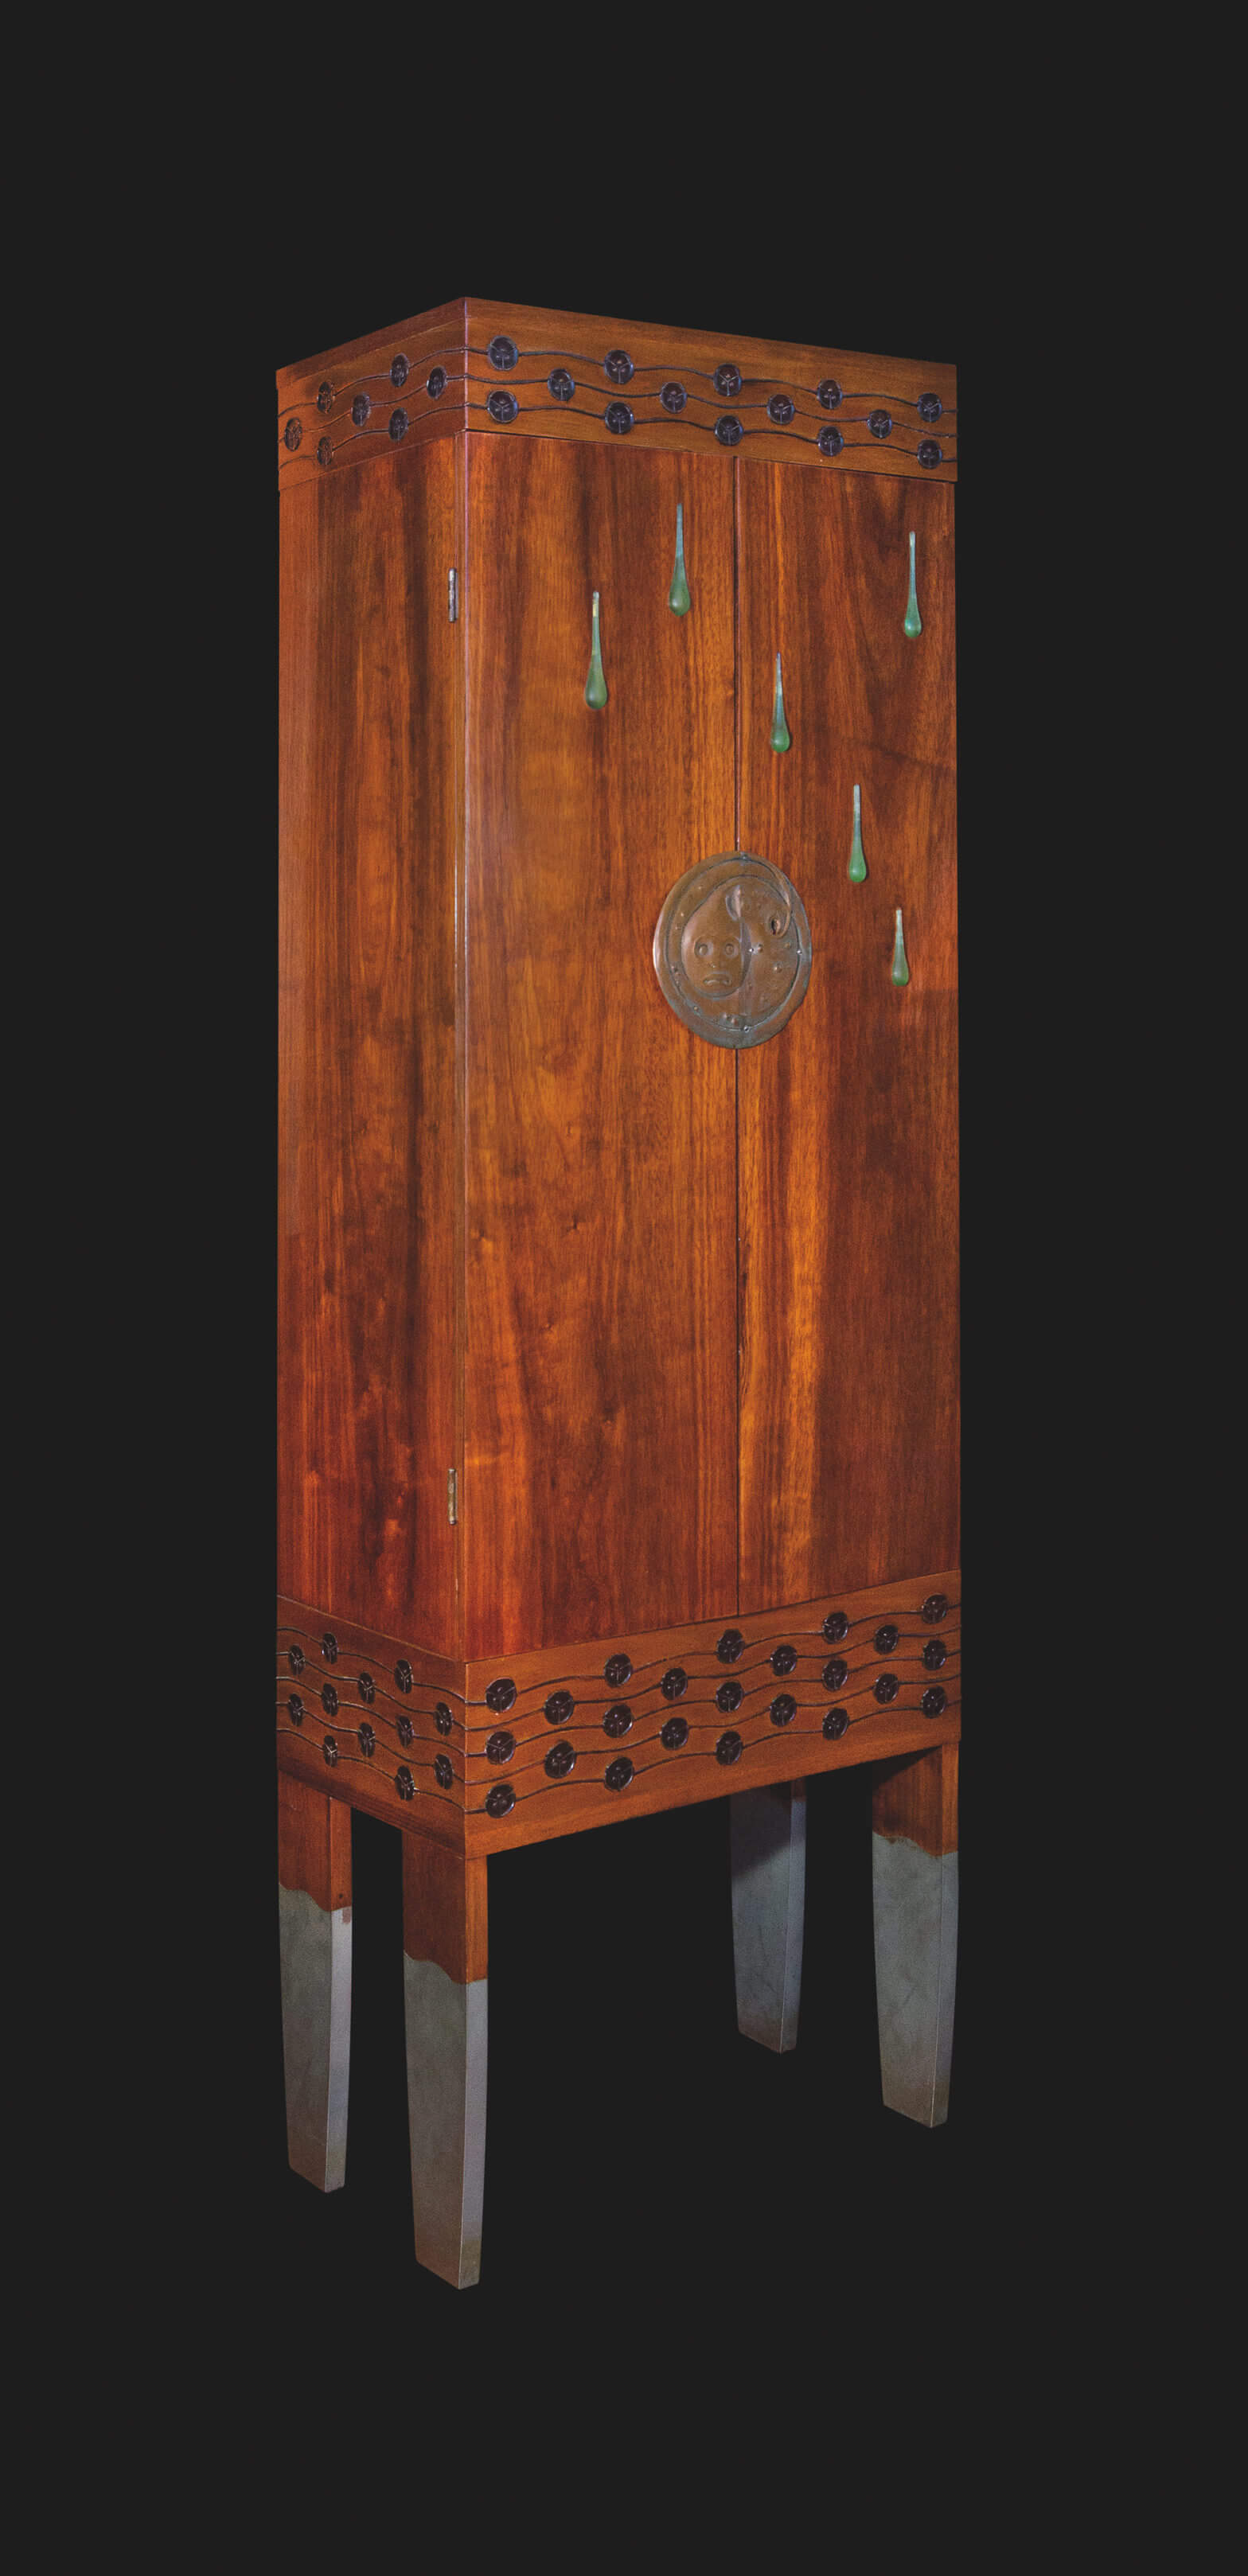 Koloman Moser - The Enchanted Princess Cabinet, NGV, National Gallery of Victoria, Melbourne